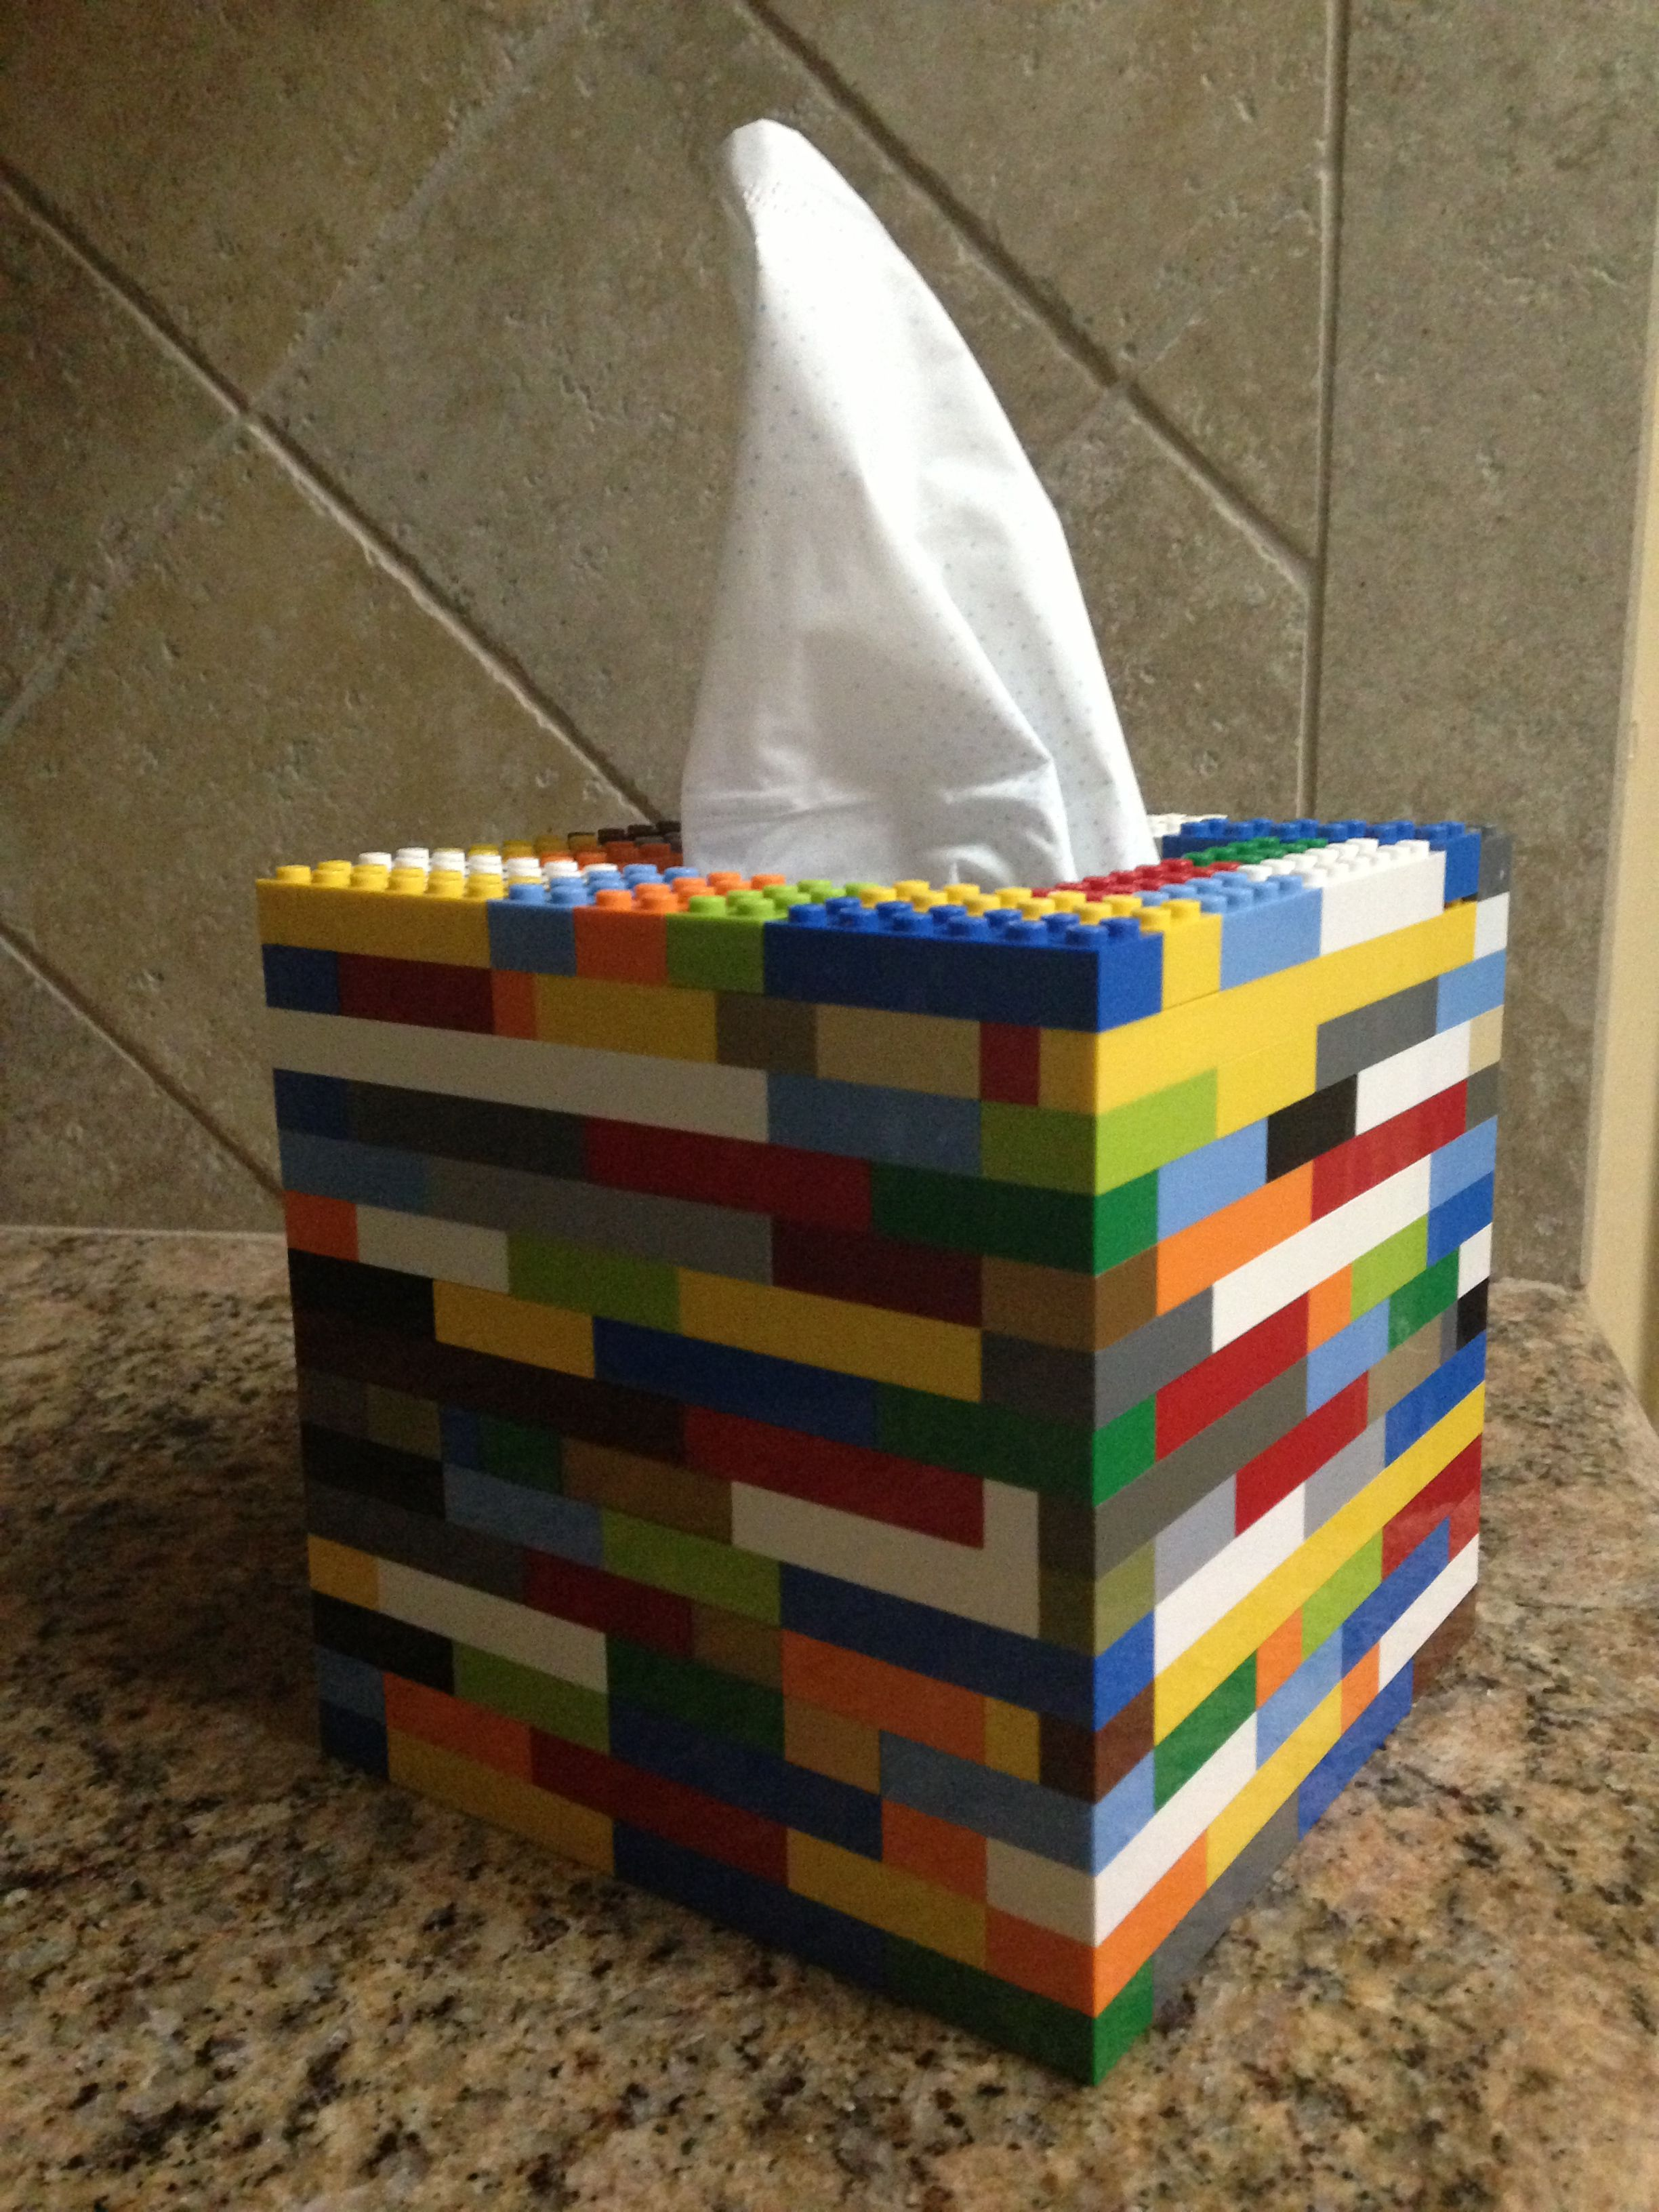 storage containers for lego pieces